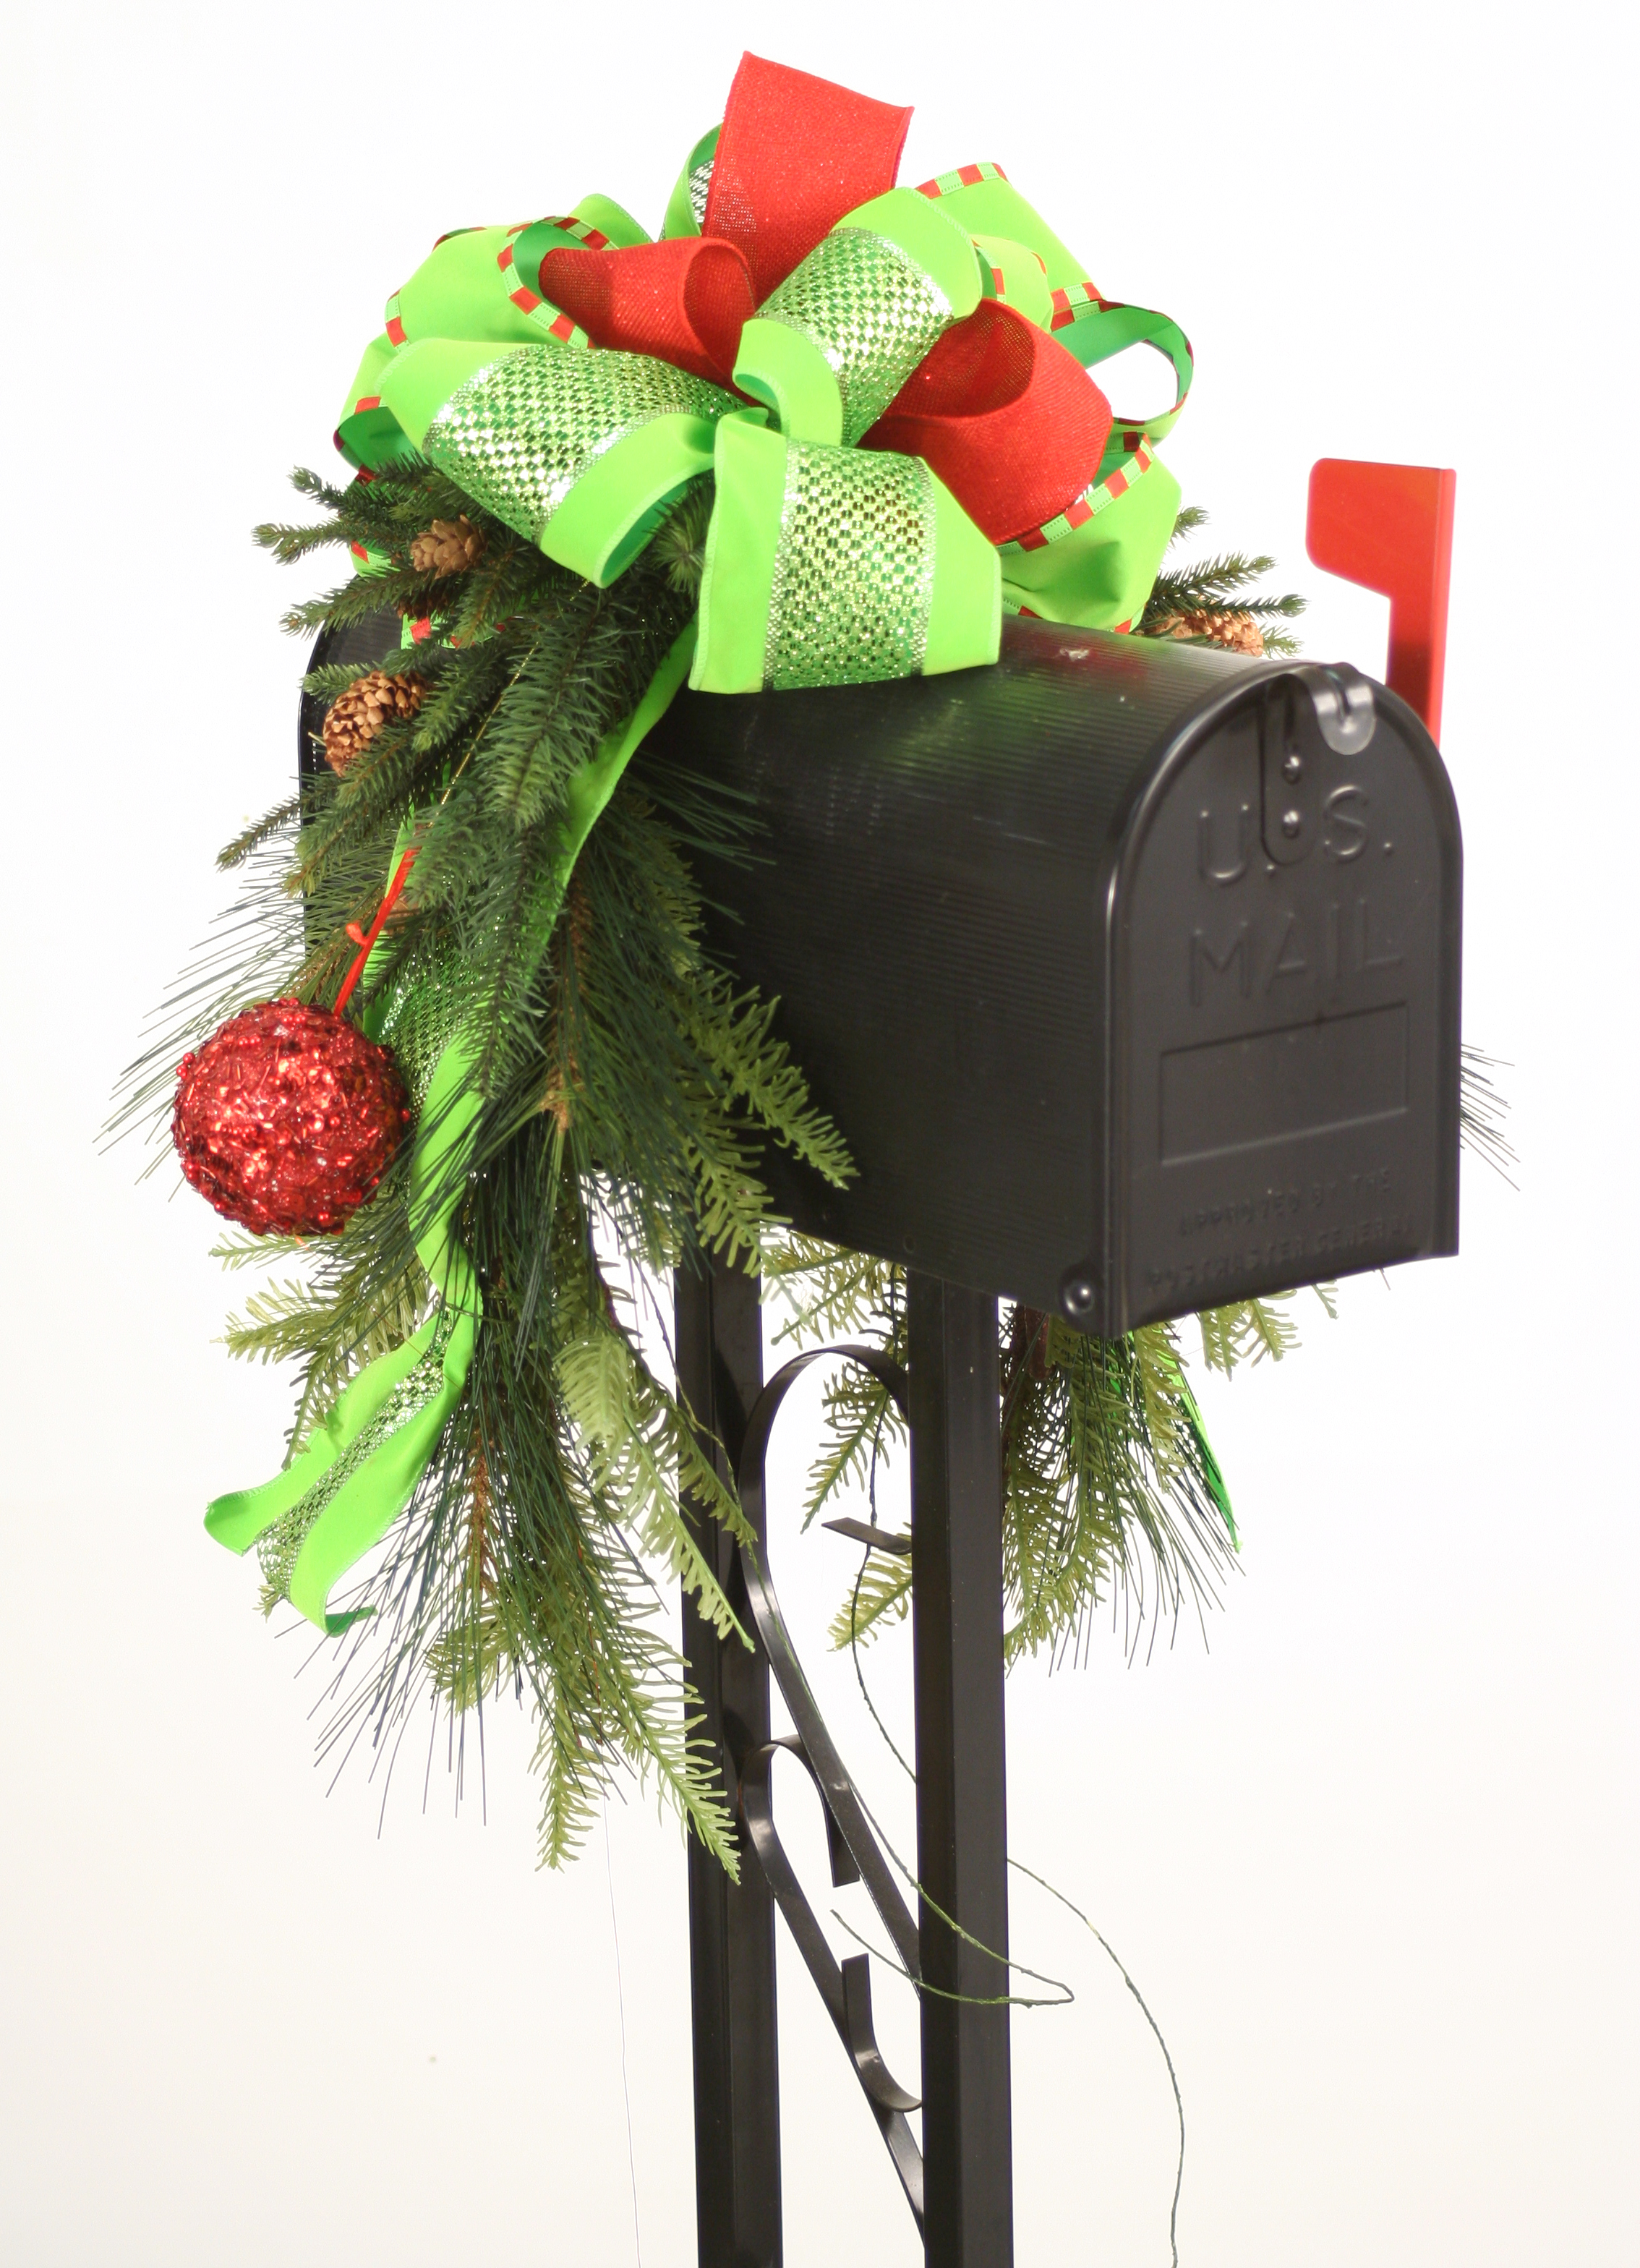 Mailbox Saddle - Pine and Fir Boughs, Sequined Ornaments and Ribbon